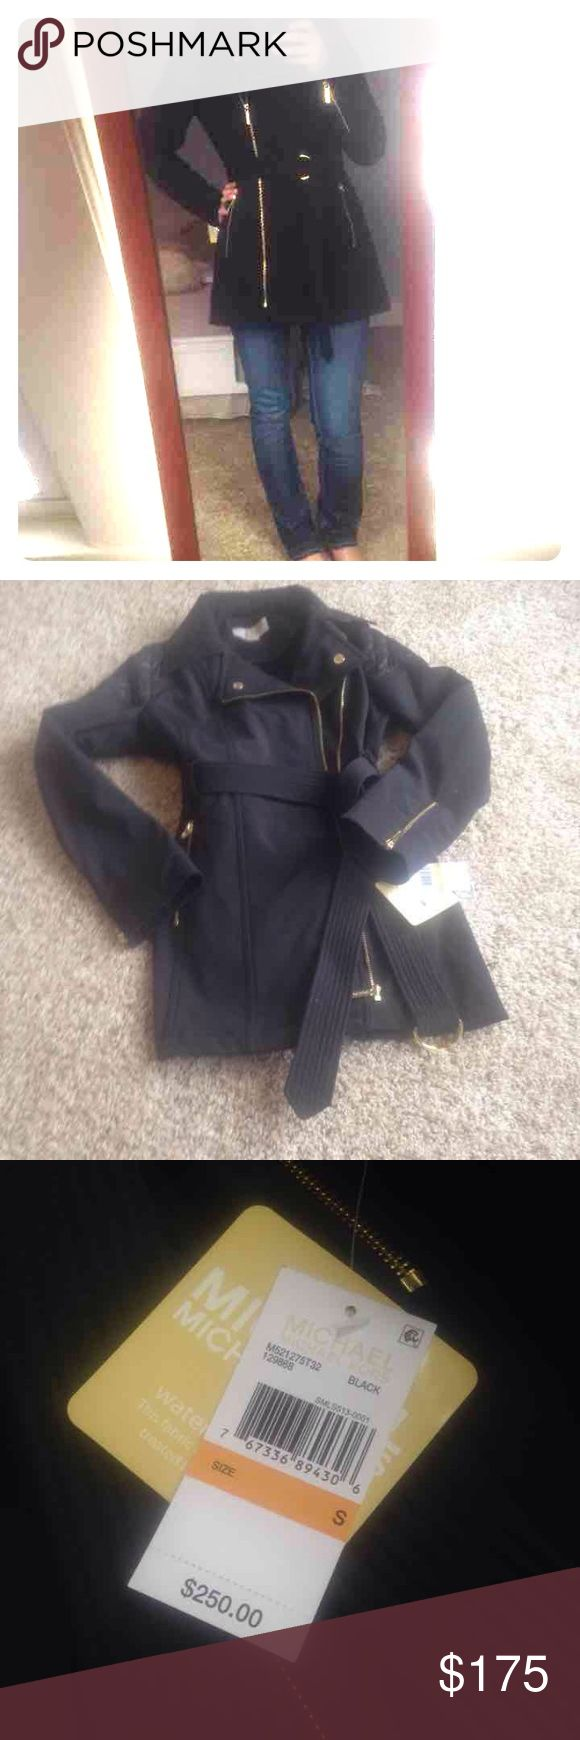 Michael Kors Water Resistant coat size small Super cute with gold details and quilted details on shoulders.  Brand new with tags.  Retail value $250 Michael Kors Jackets & Coats Pea Coats